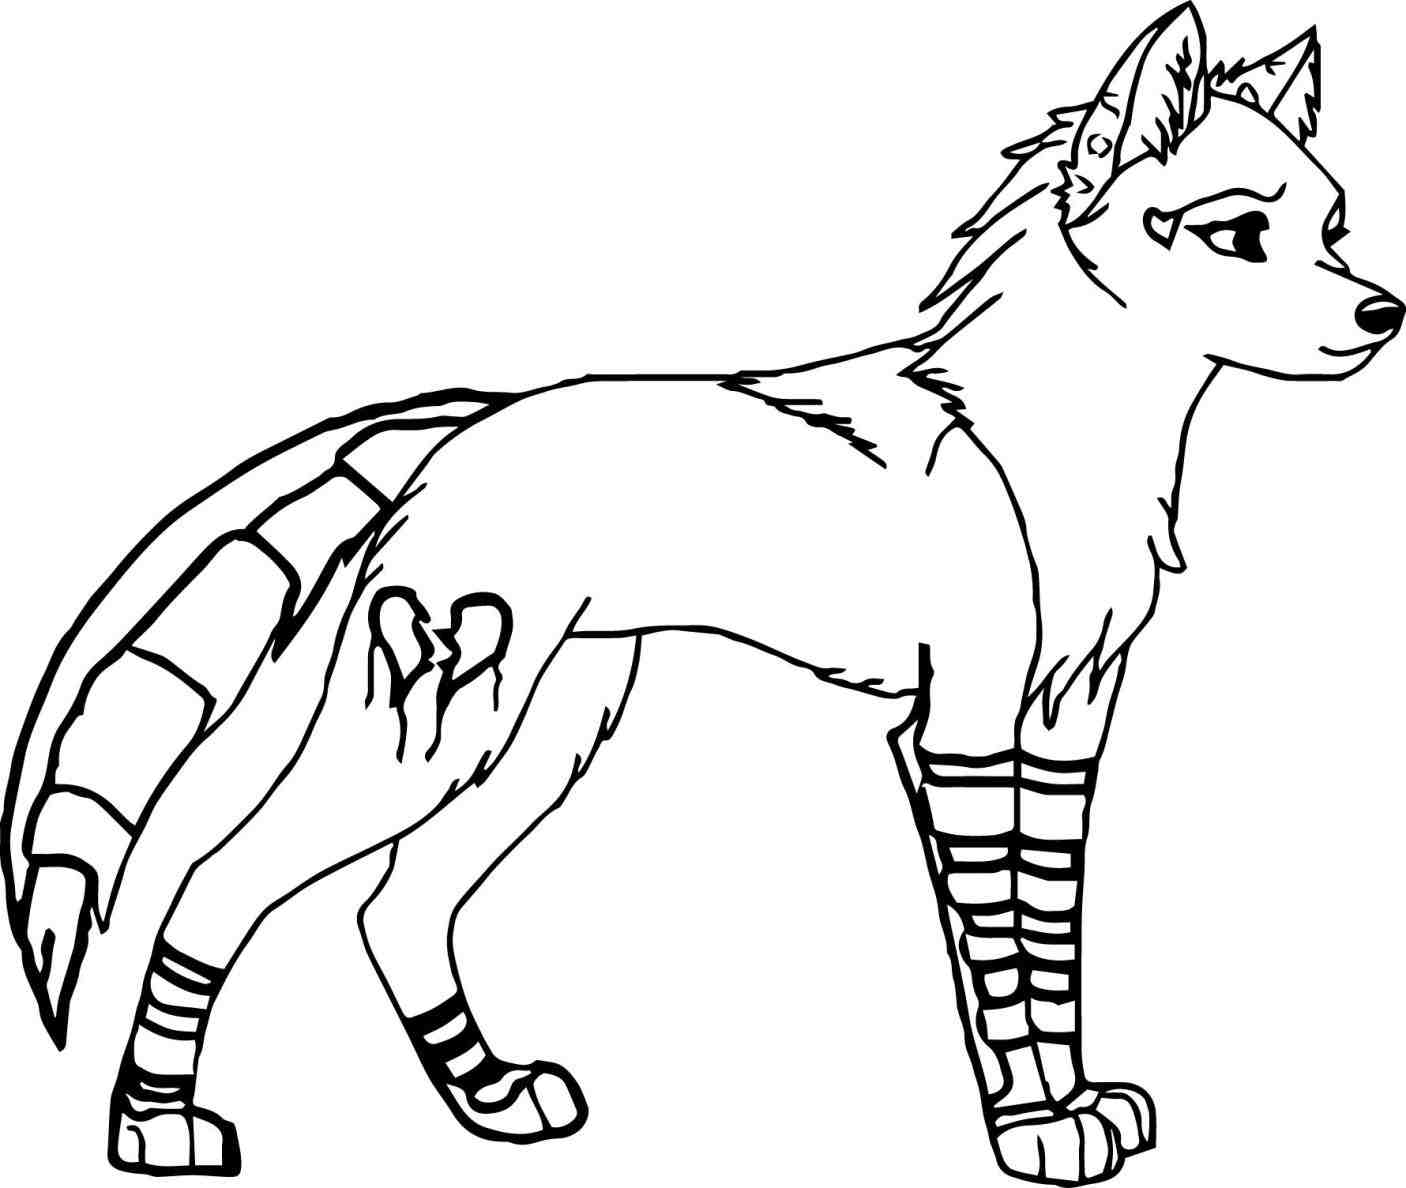 Wolf Easy Drawing At Getdrawings Com Free For Personal Use Wolf